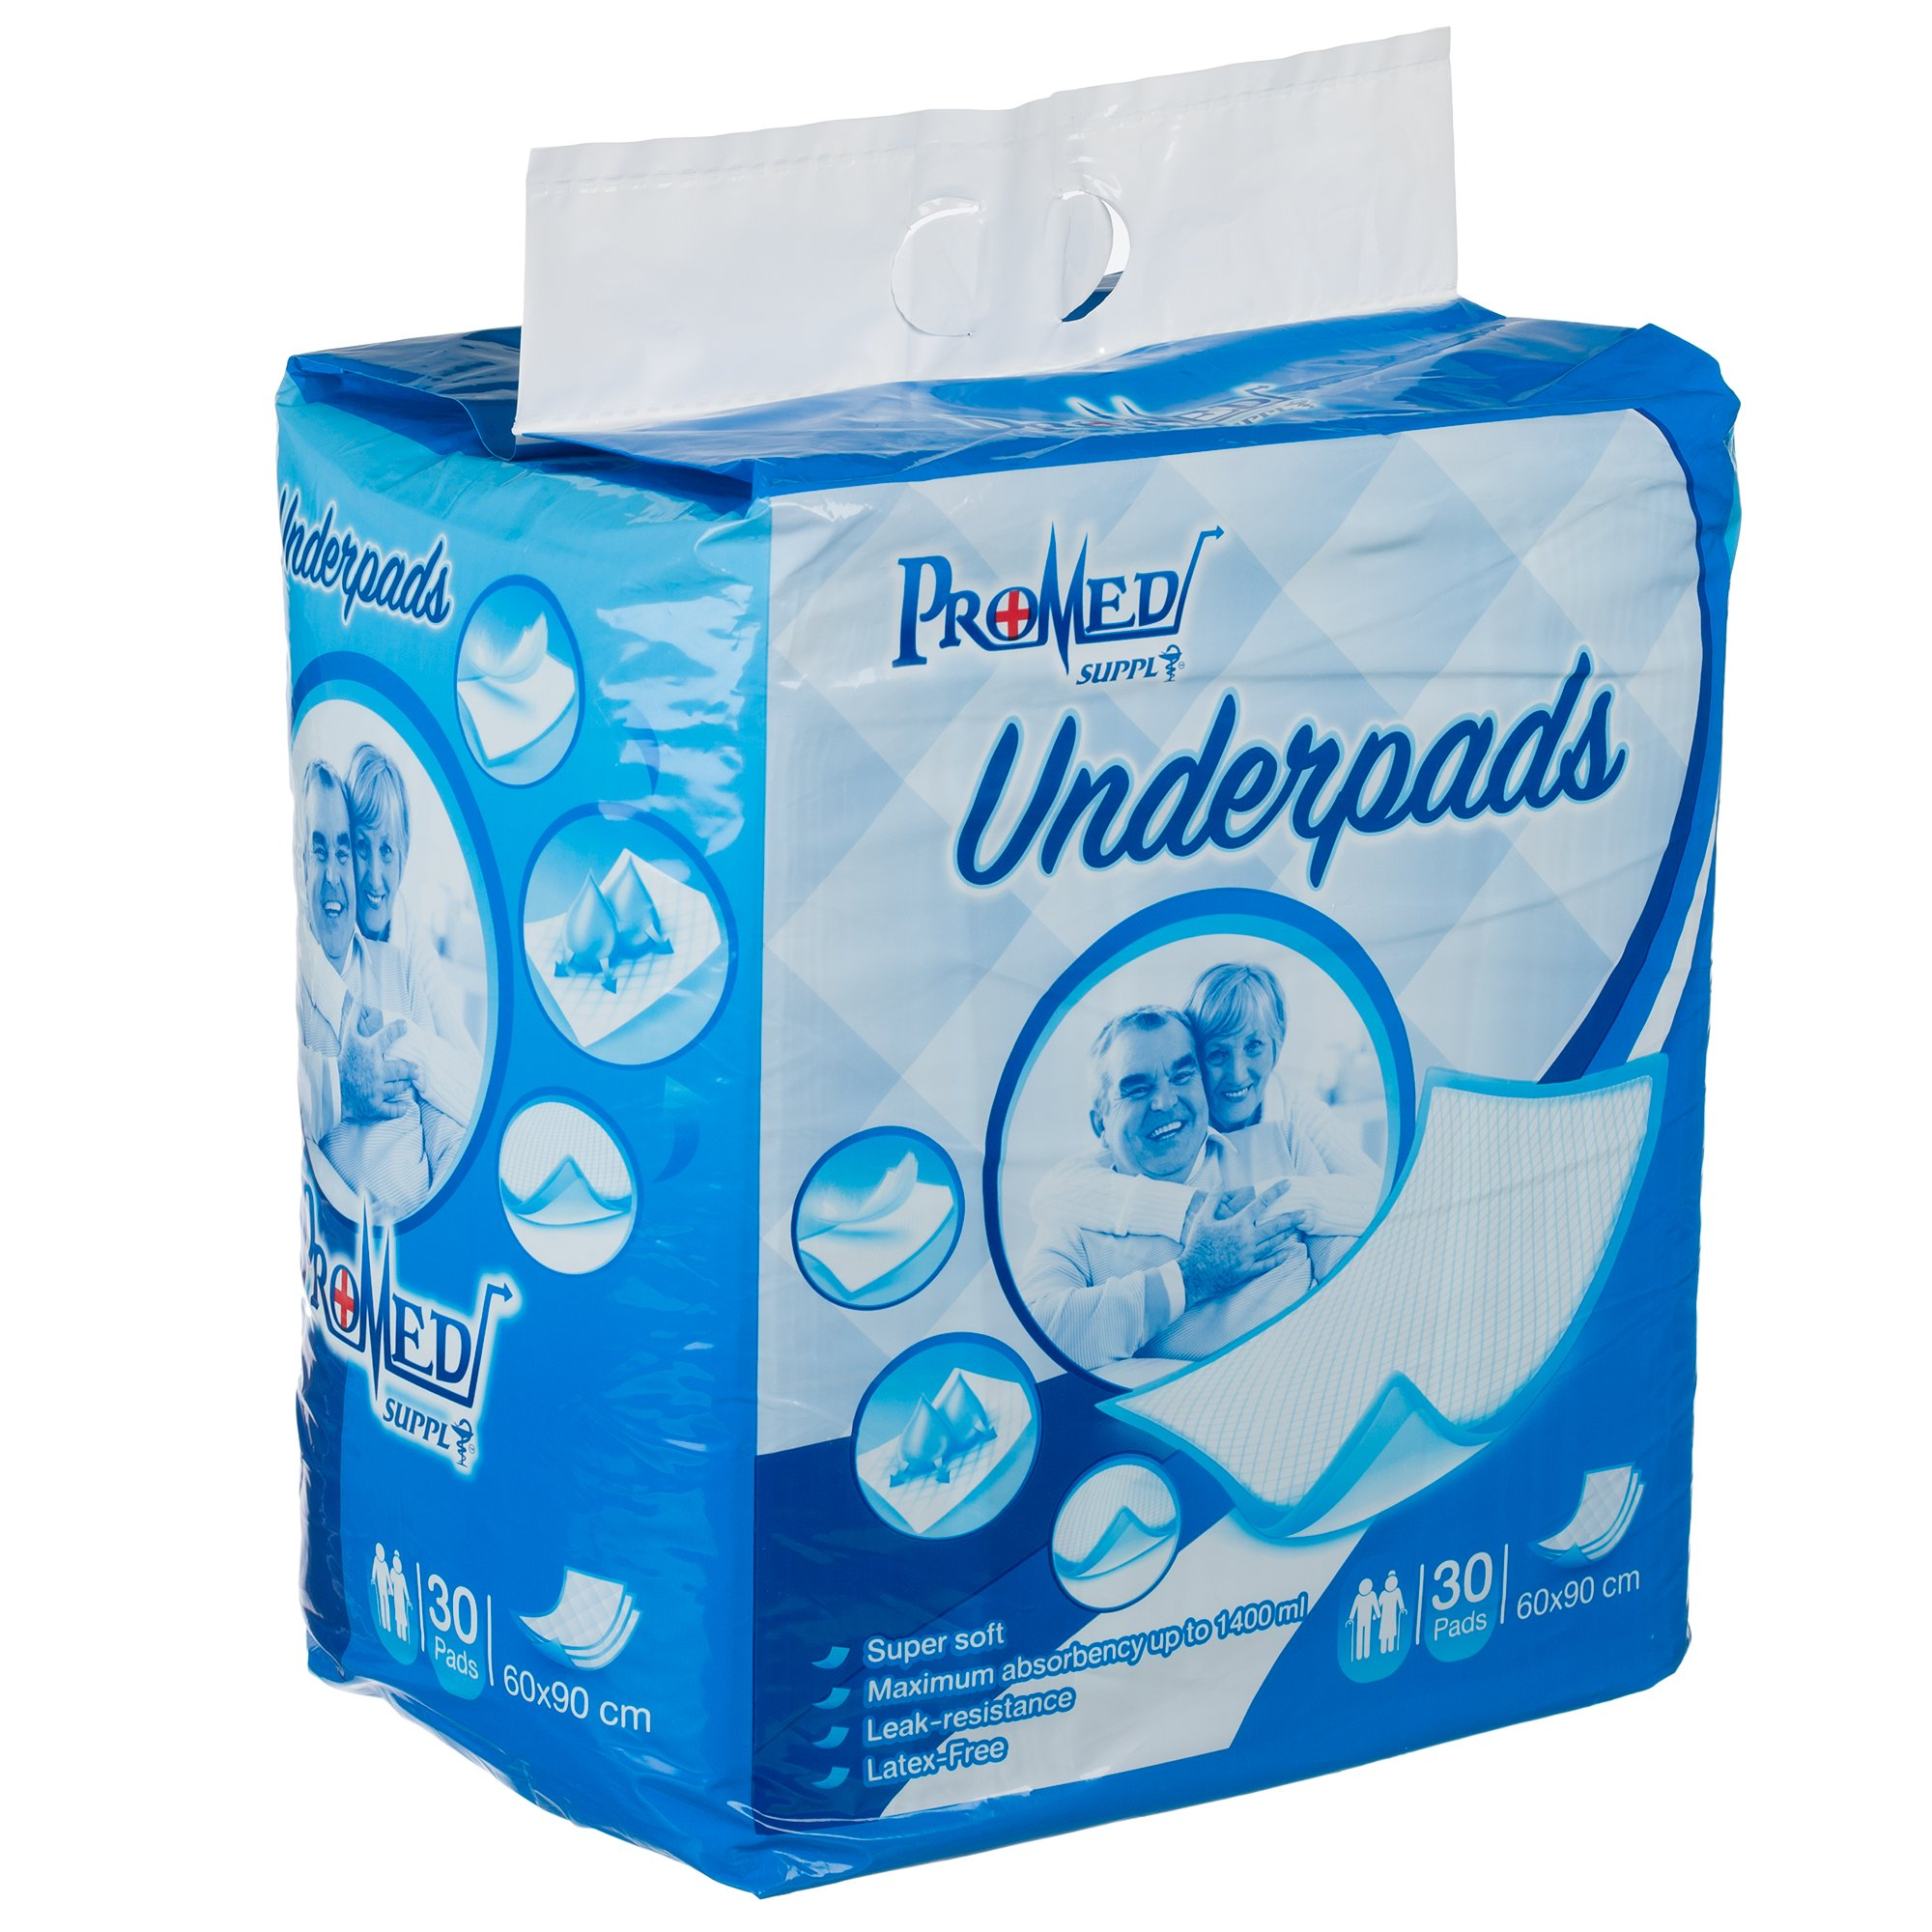 """Promed Supply Disposable Underpads Chux Premium Heavy Duty Water Proof Incontinence Pads Blue 80 gram, 8 gram SAP, Approx 23""""x36"""" 30 count"""